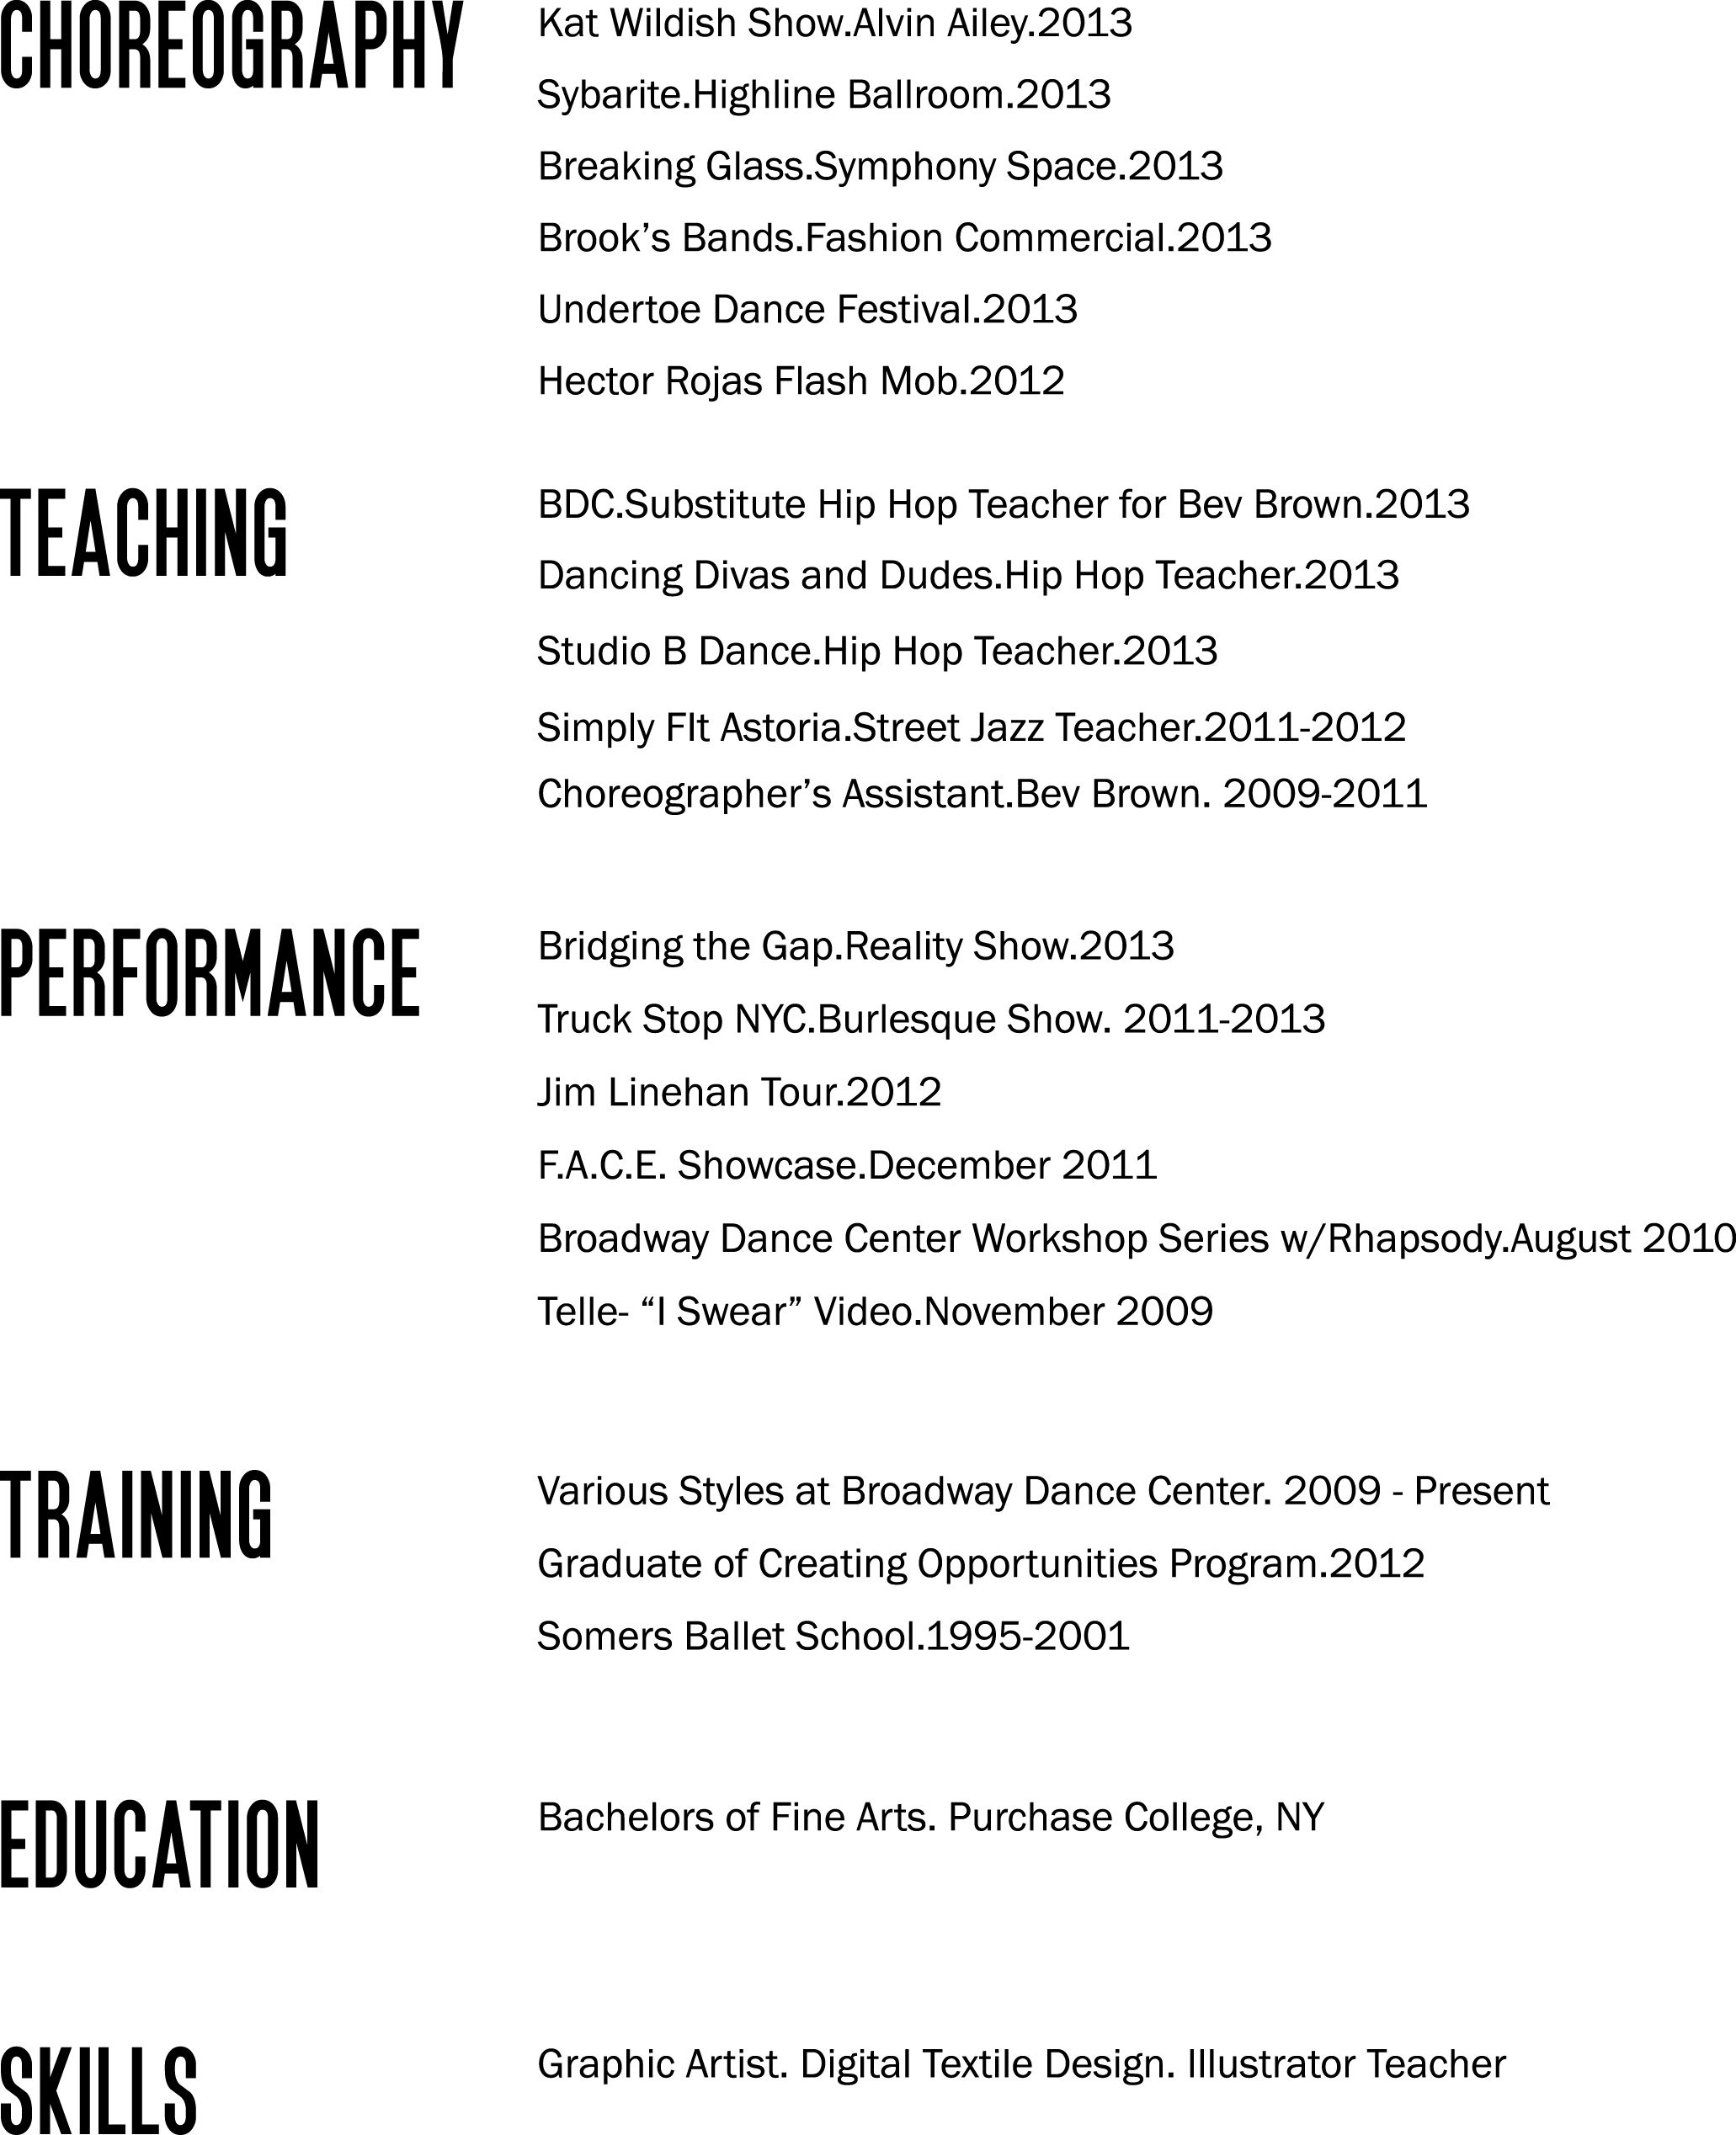 Bad Layout, but good reminder of what to put on a dance resume, and ...